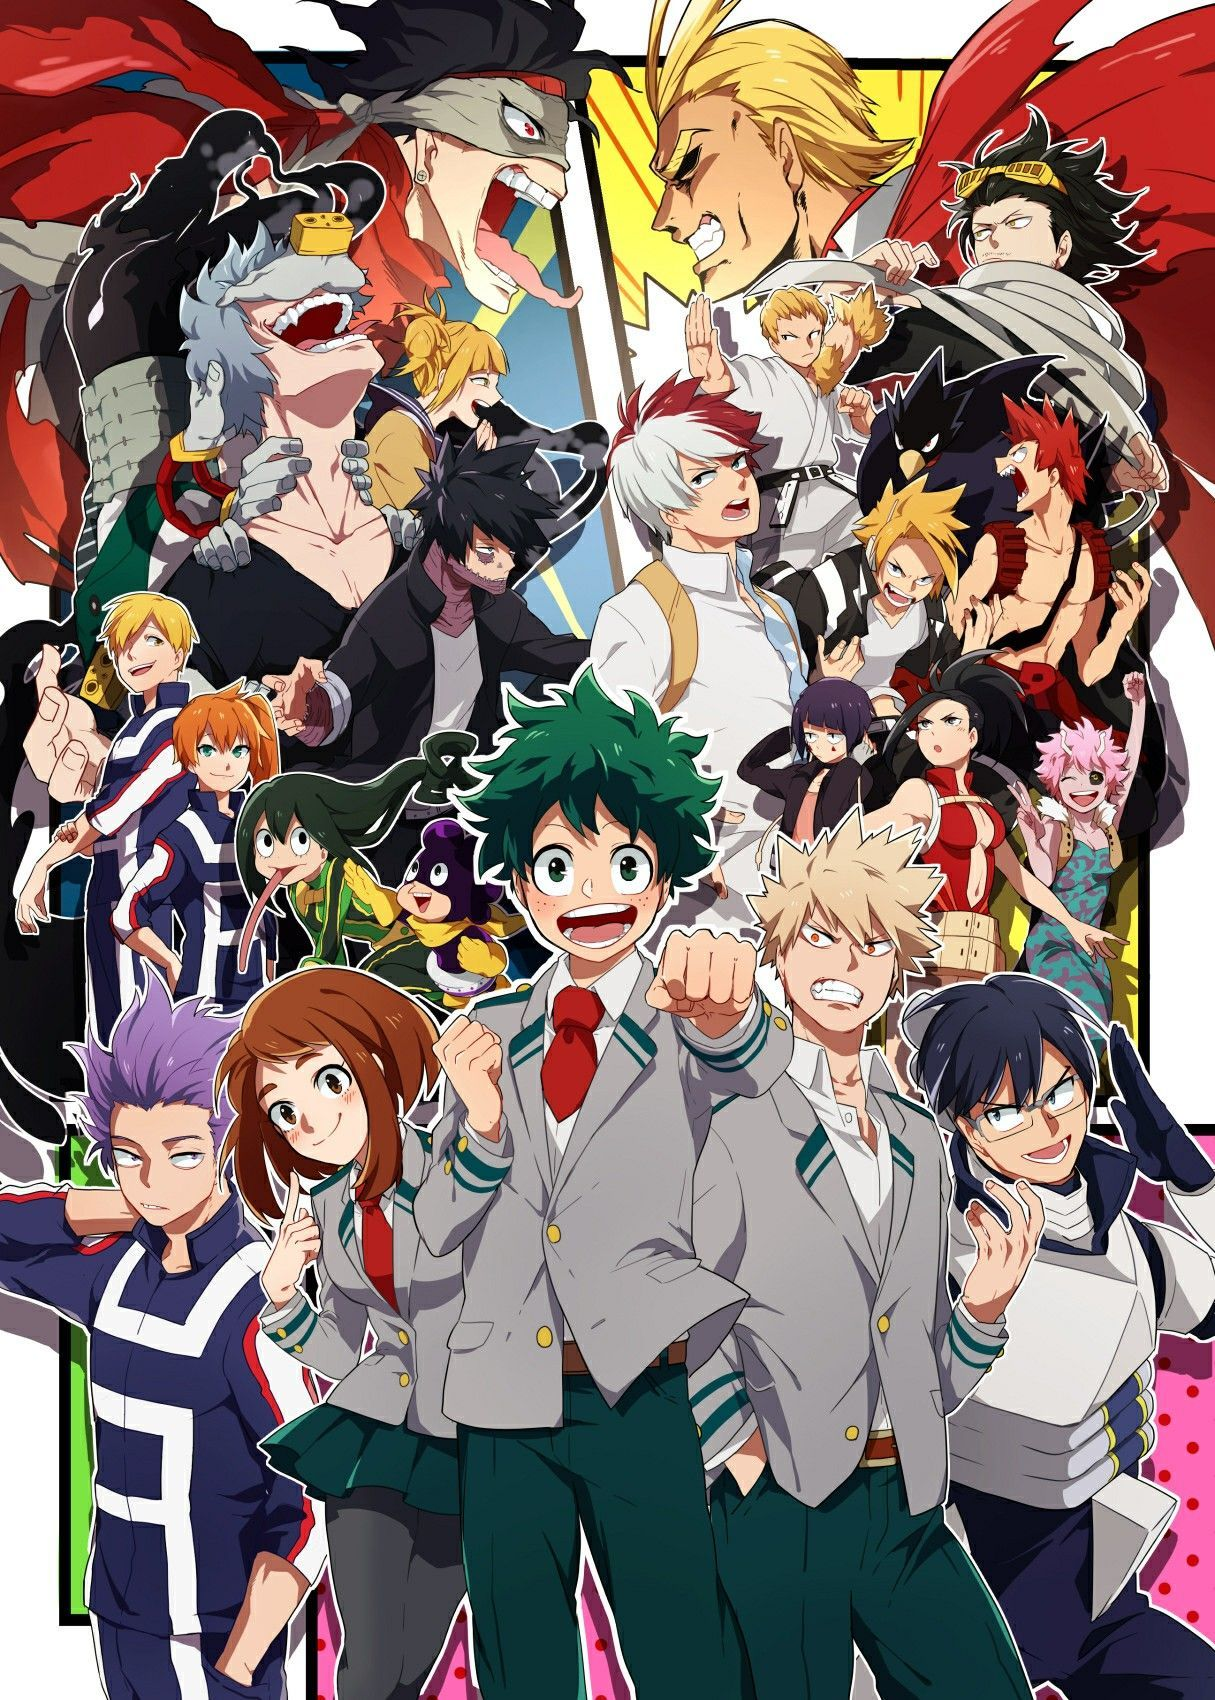 See the handpicked my hero academia live wallpaper images and share with your frends and social sites. My Hero Academia Wallpapers - Top Free My Hero Academia ...